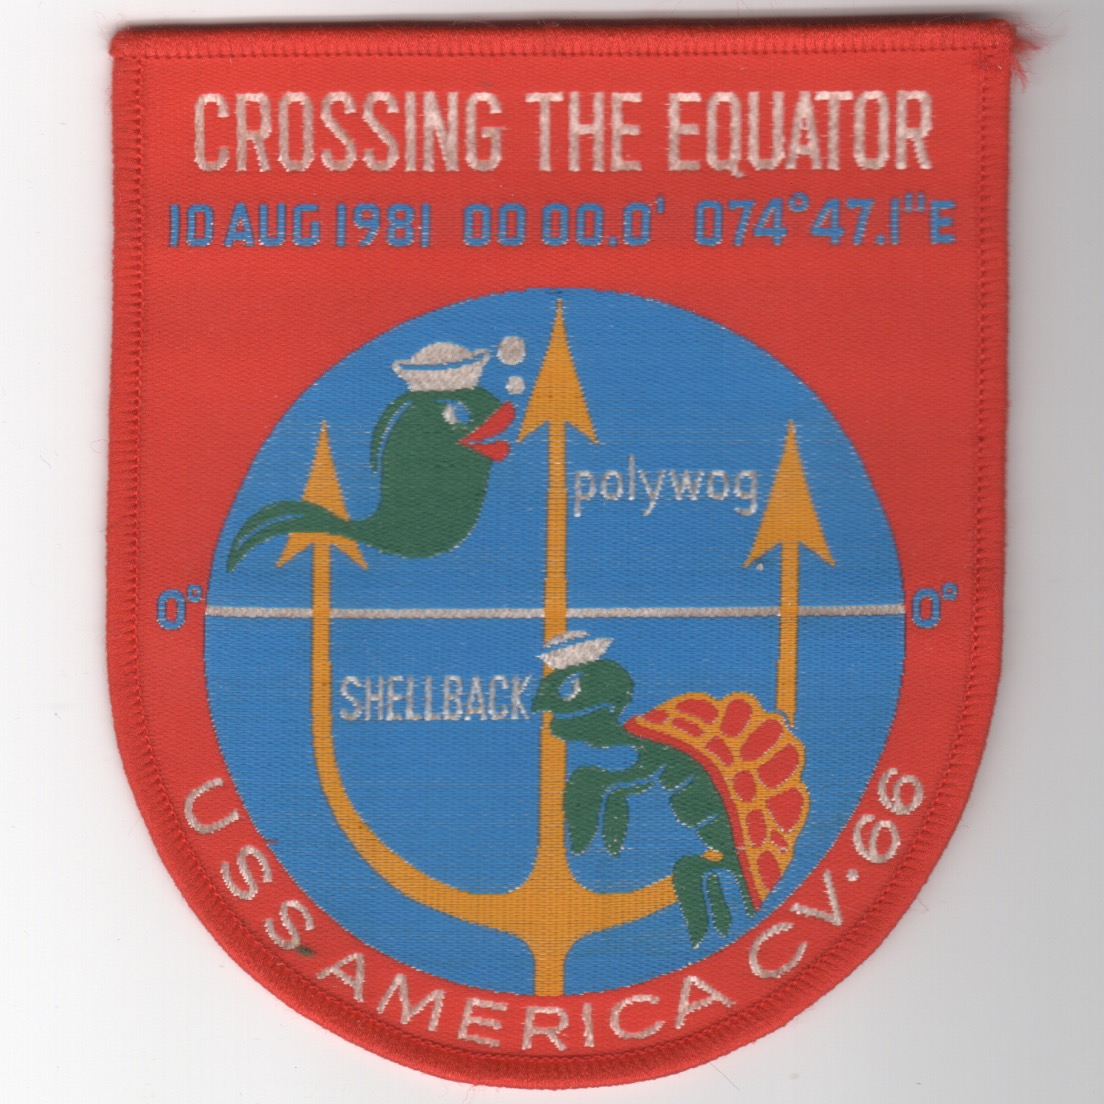 447) CV-66 1981 Equator Cruise (Woven/Red)